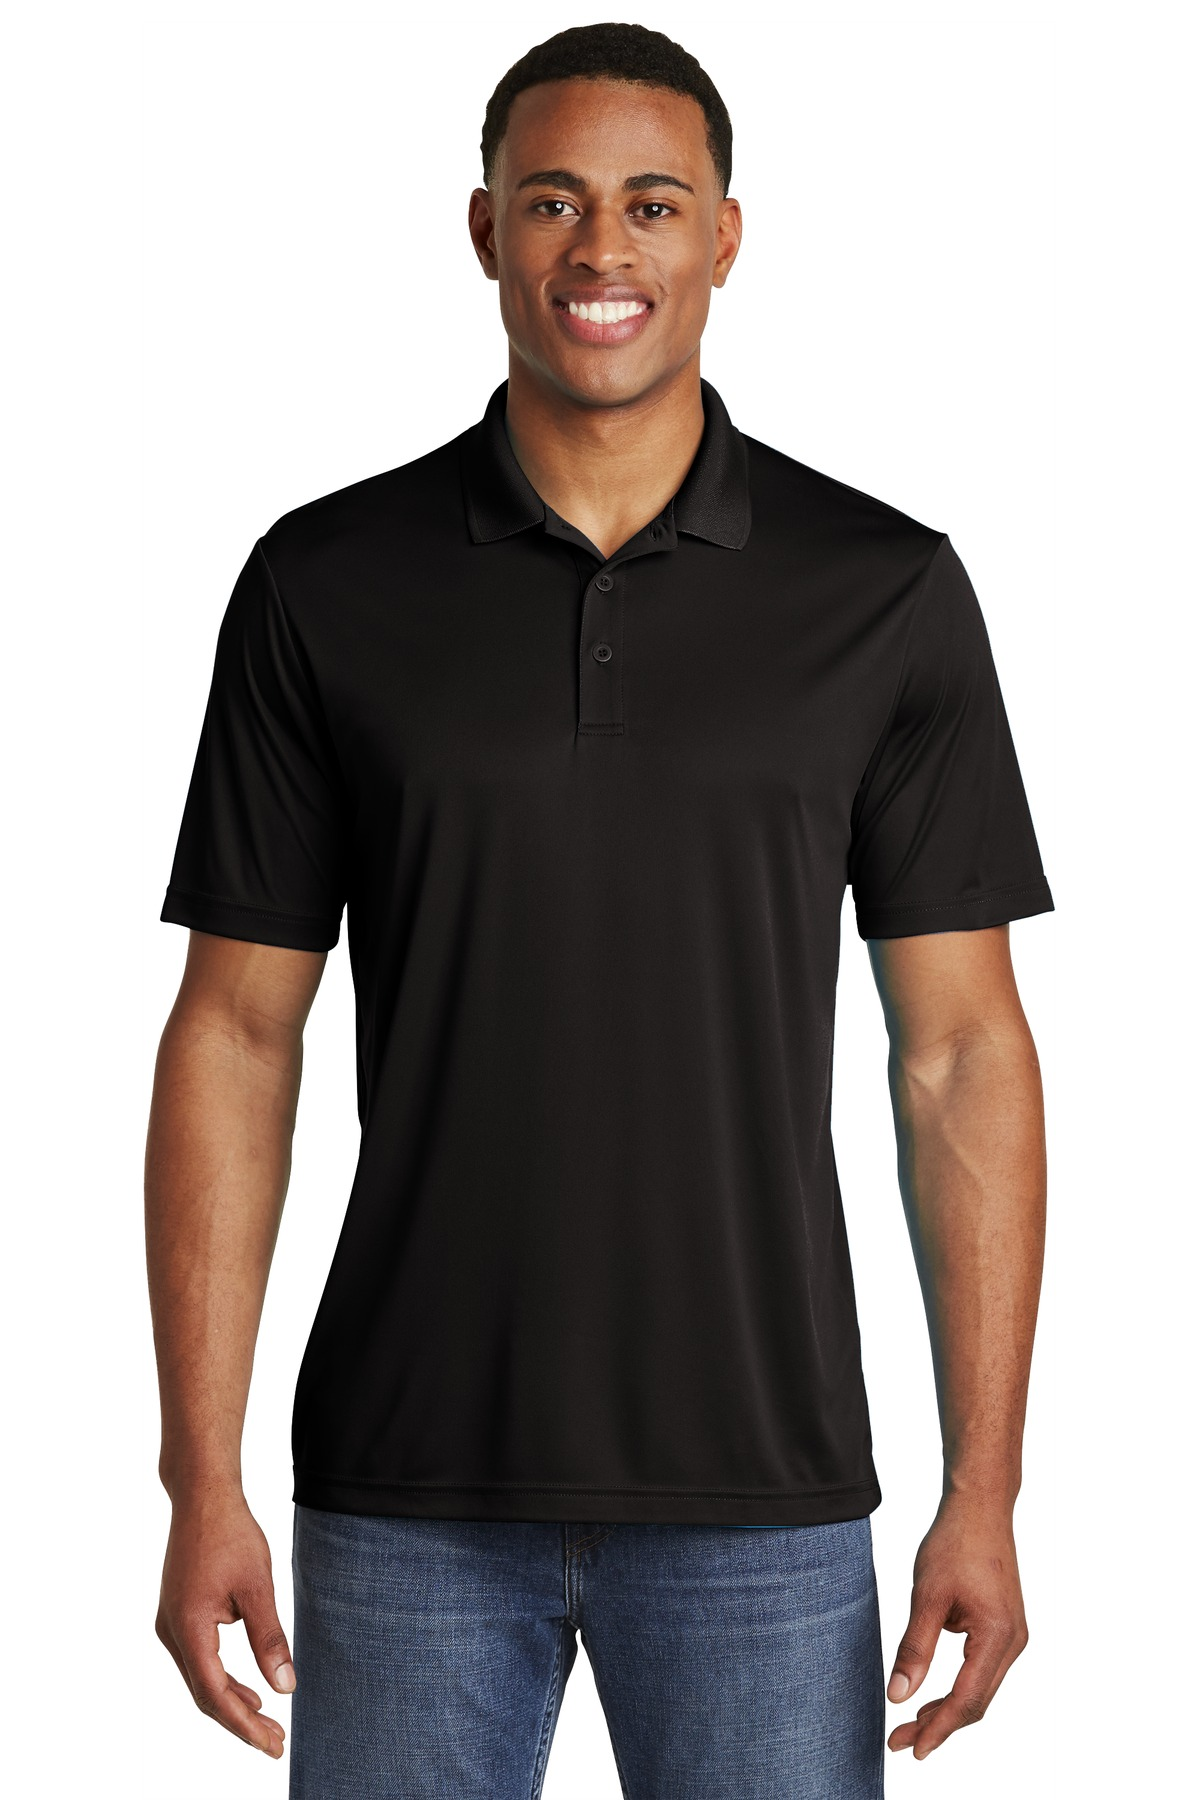 Sport-Tek  ®  PosiCharge  ®  Competitor  ™  Polo. ST550 - Black